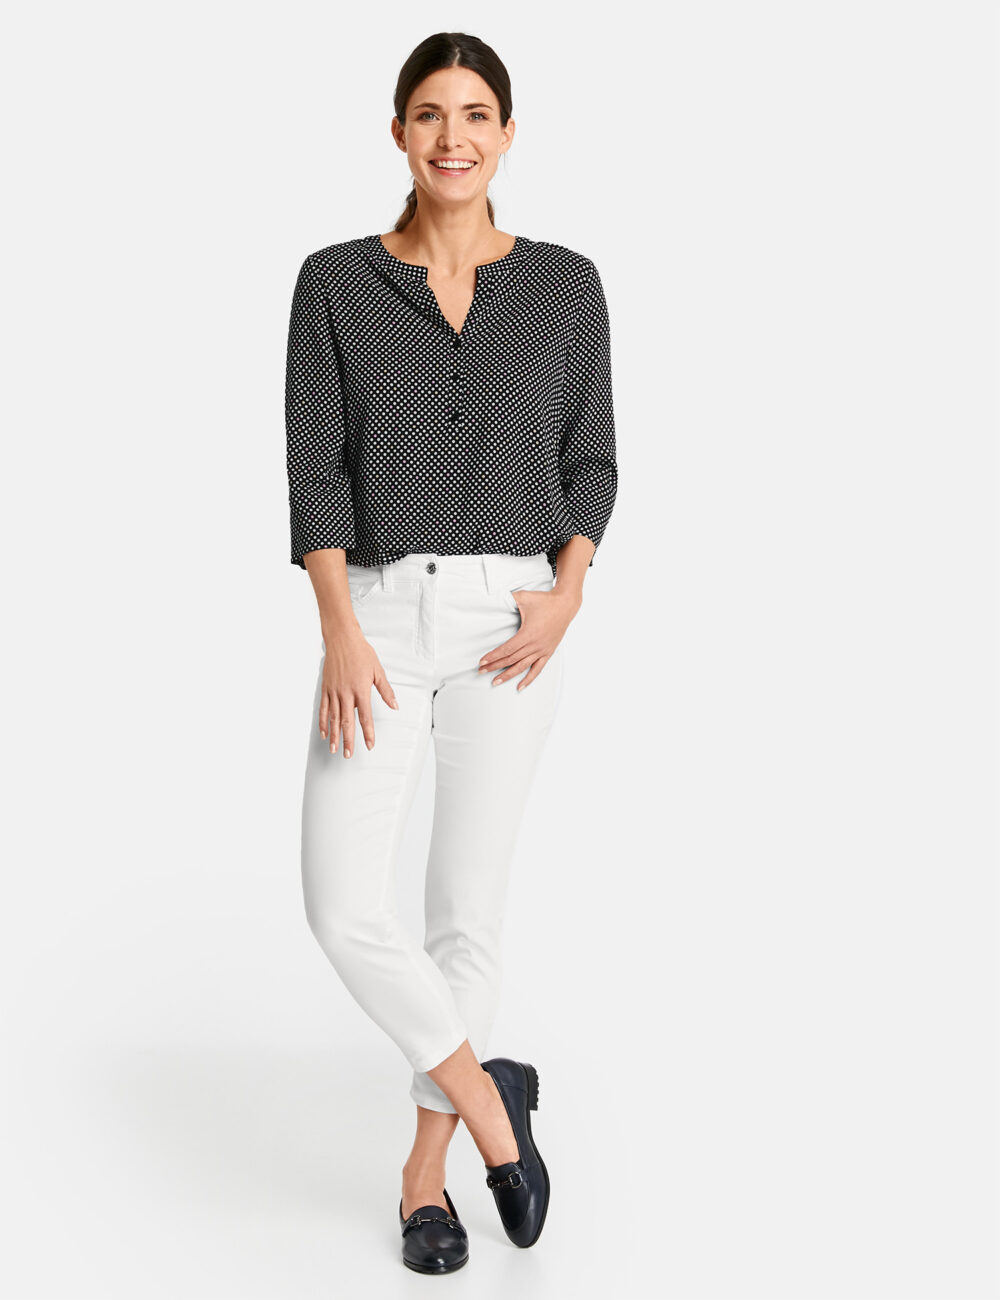 Gerry Weber. Best4me. Buxur.